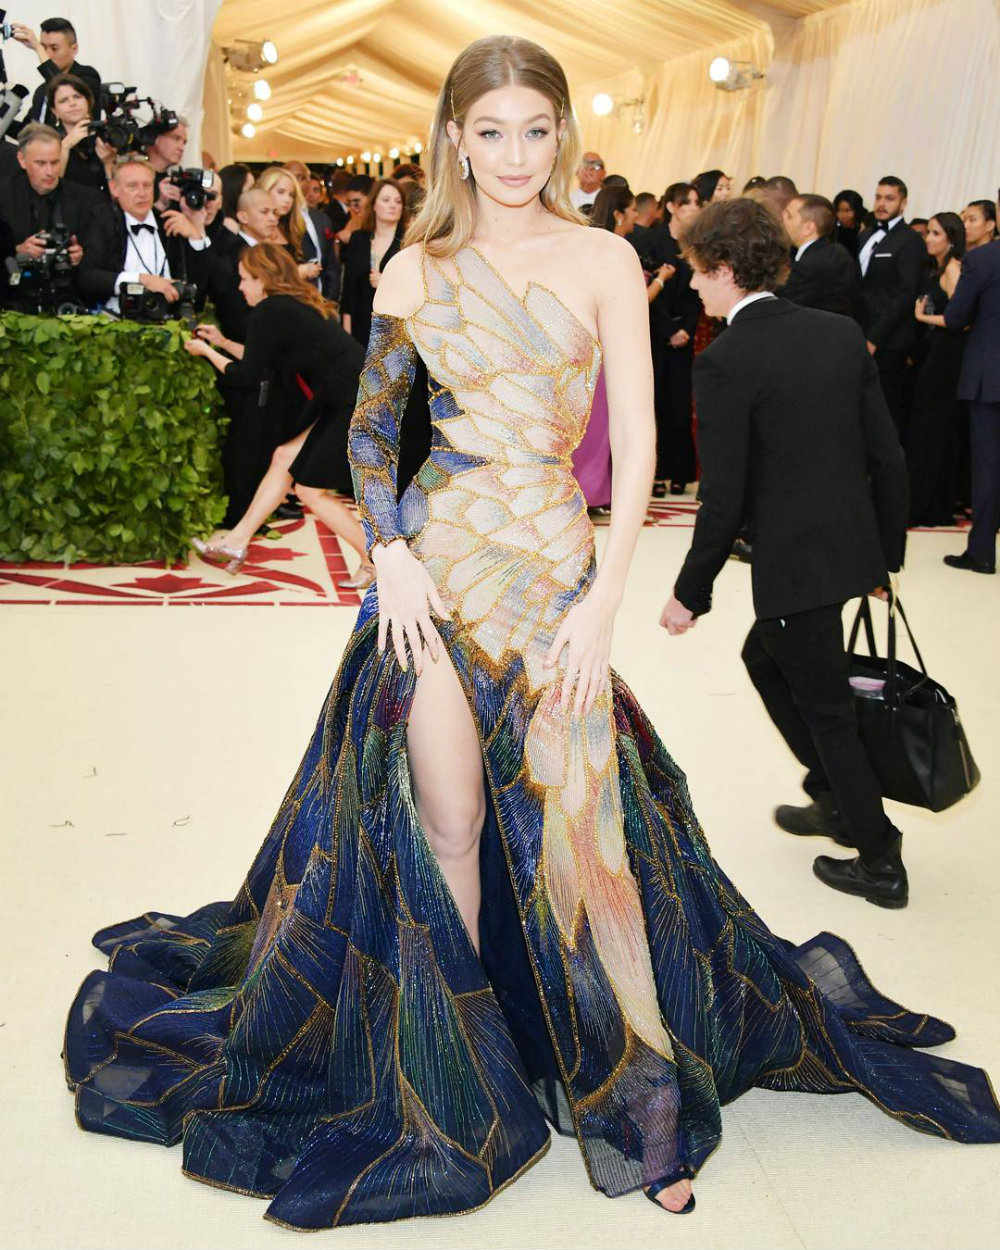 Met Gala 2018 The Best Looks from the Red Carpet 05 Met Gala 2018 Met Gala 2018: The Best Looks from the Red Carpet Met Gala 2018 The Best Looks from the Red Carpet 05